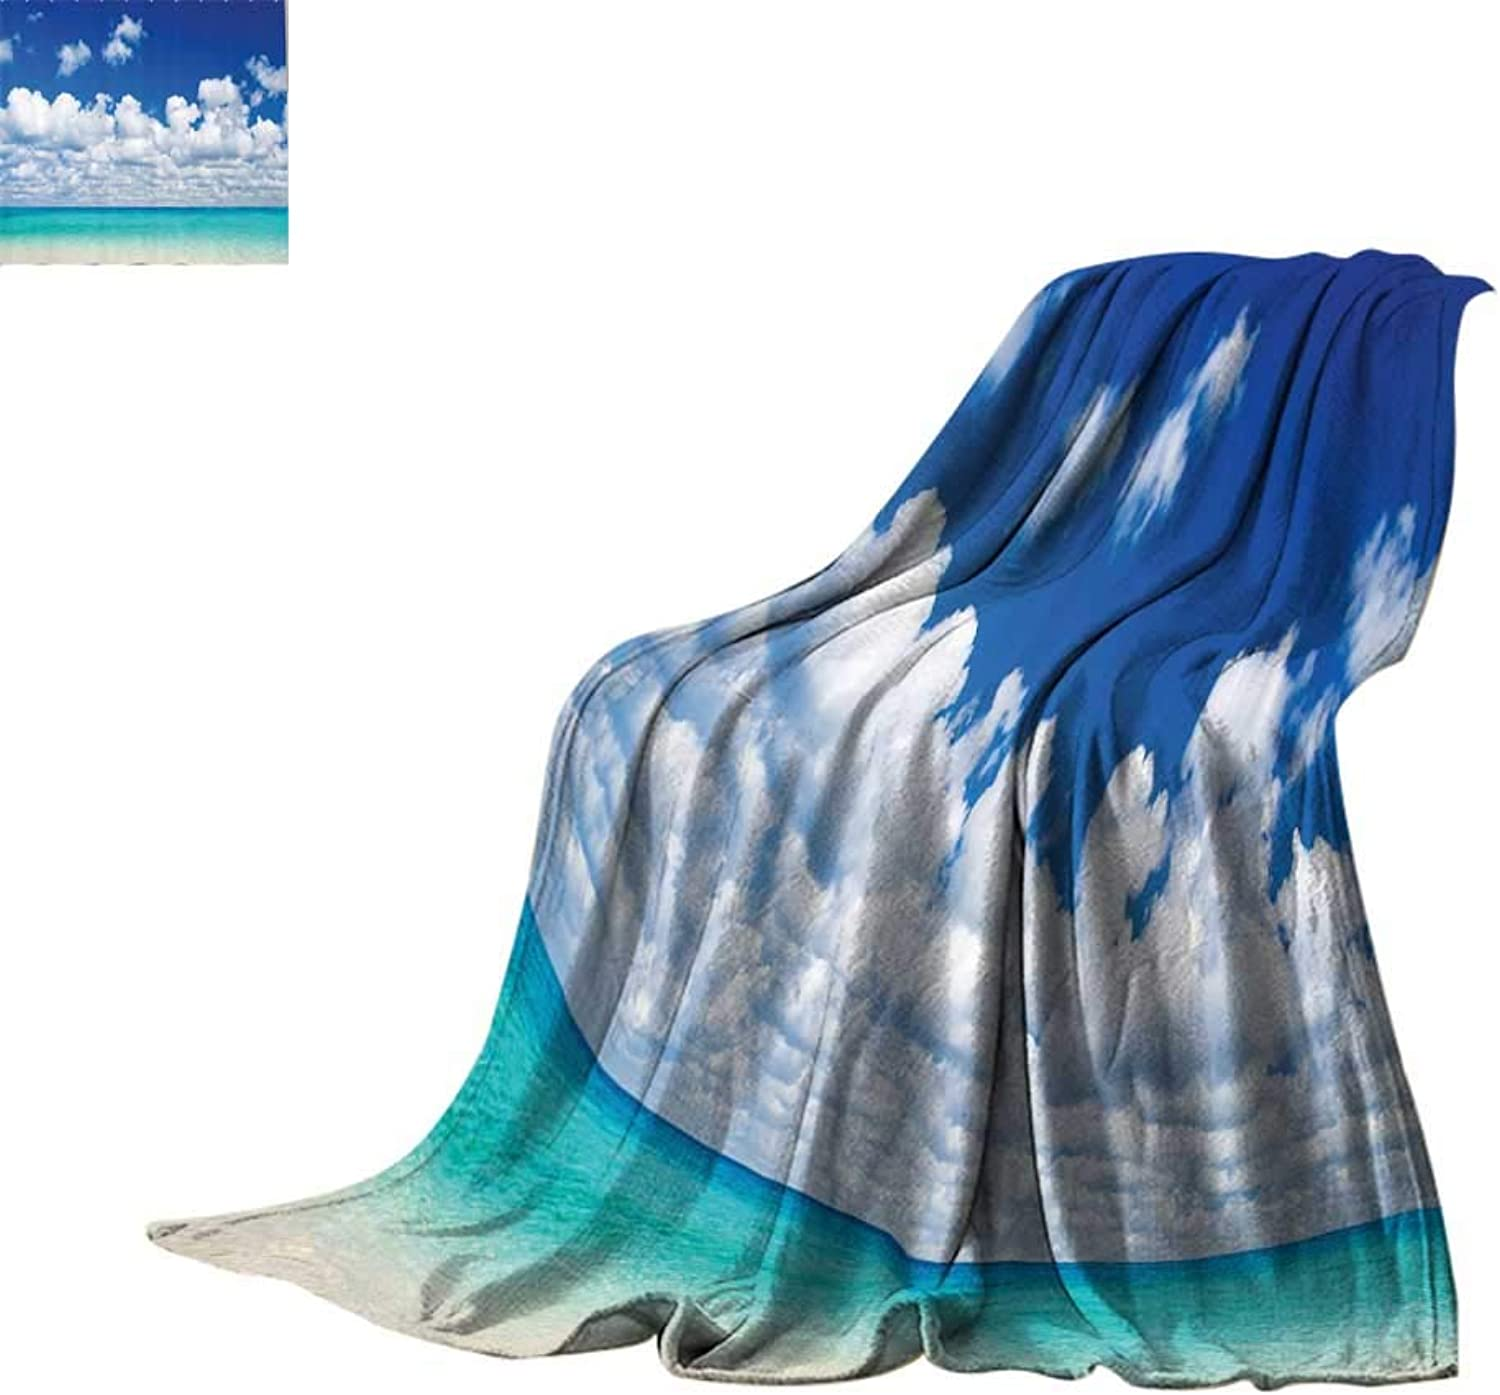 Cozy Flannel Blanket Ocean Decor,Paradise Beach and Tropical Hawaiian Style Exotic Sky color with Clouds Scenery,Turquoise Azure White Print Summer Quilt Comforter Bed or Couch 60 x35